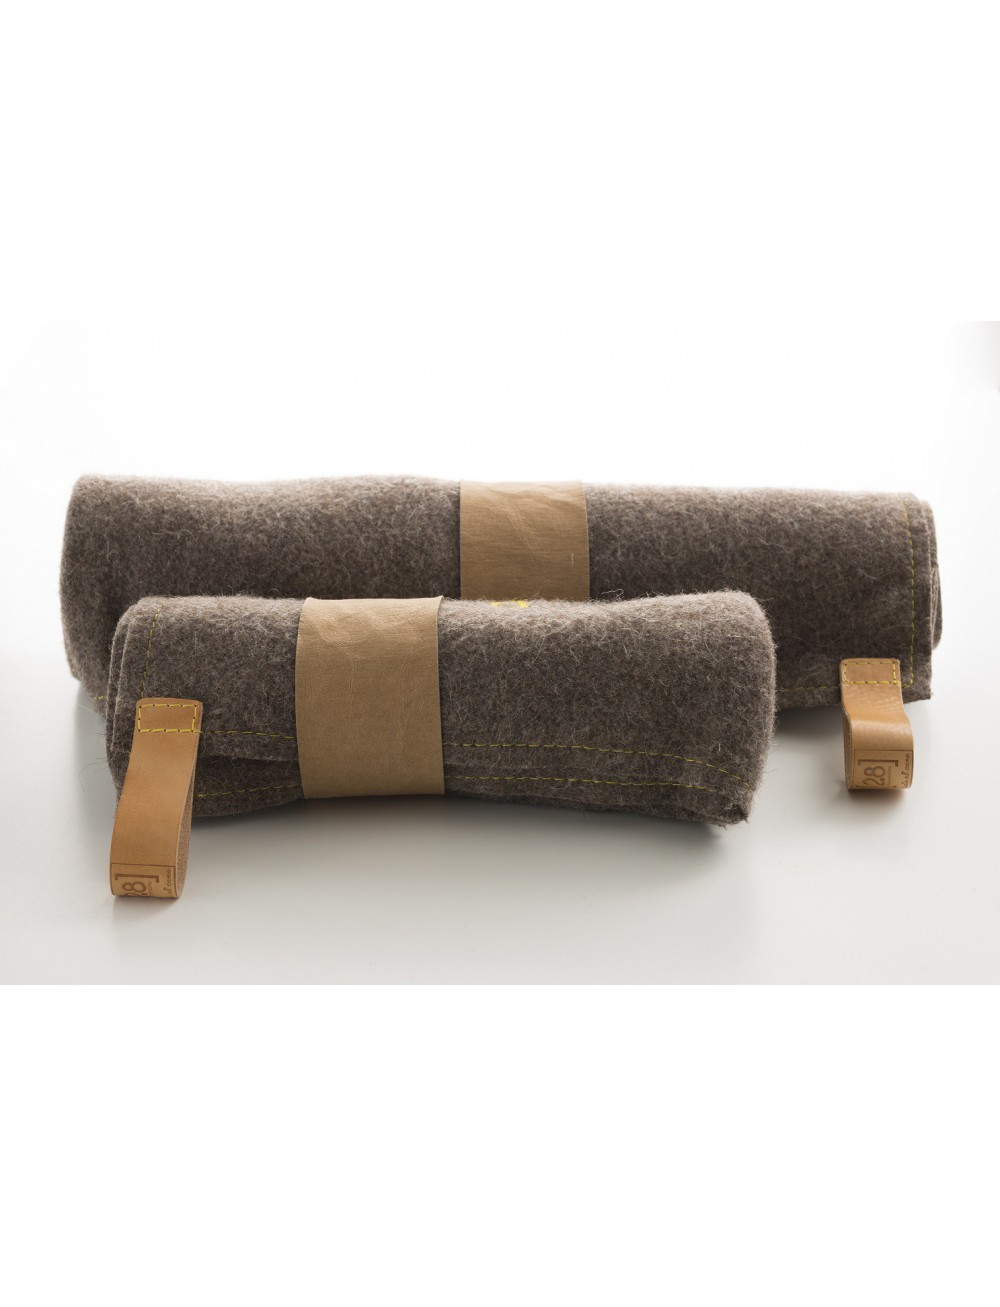 ANSEL - Military Wool Blanket  2.8 design for dogs